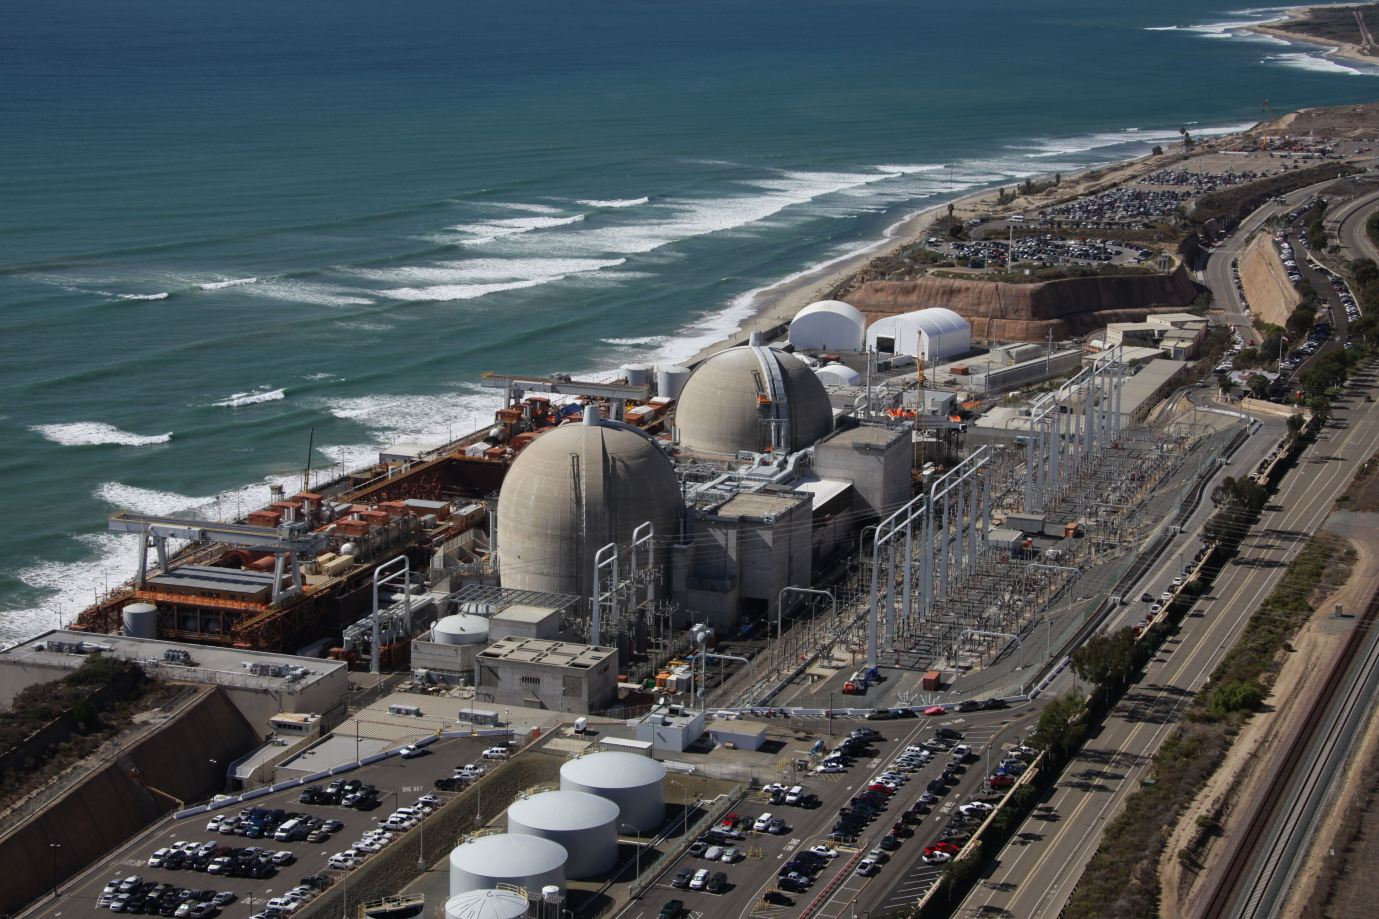 https://spoonsenergymatters.files.wordpress.com/2013/07/san-onofre-nuclear-generating-station.jpg